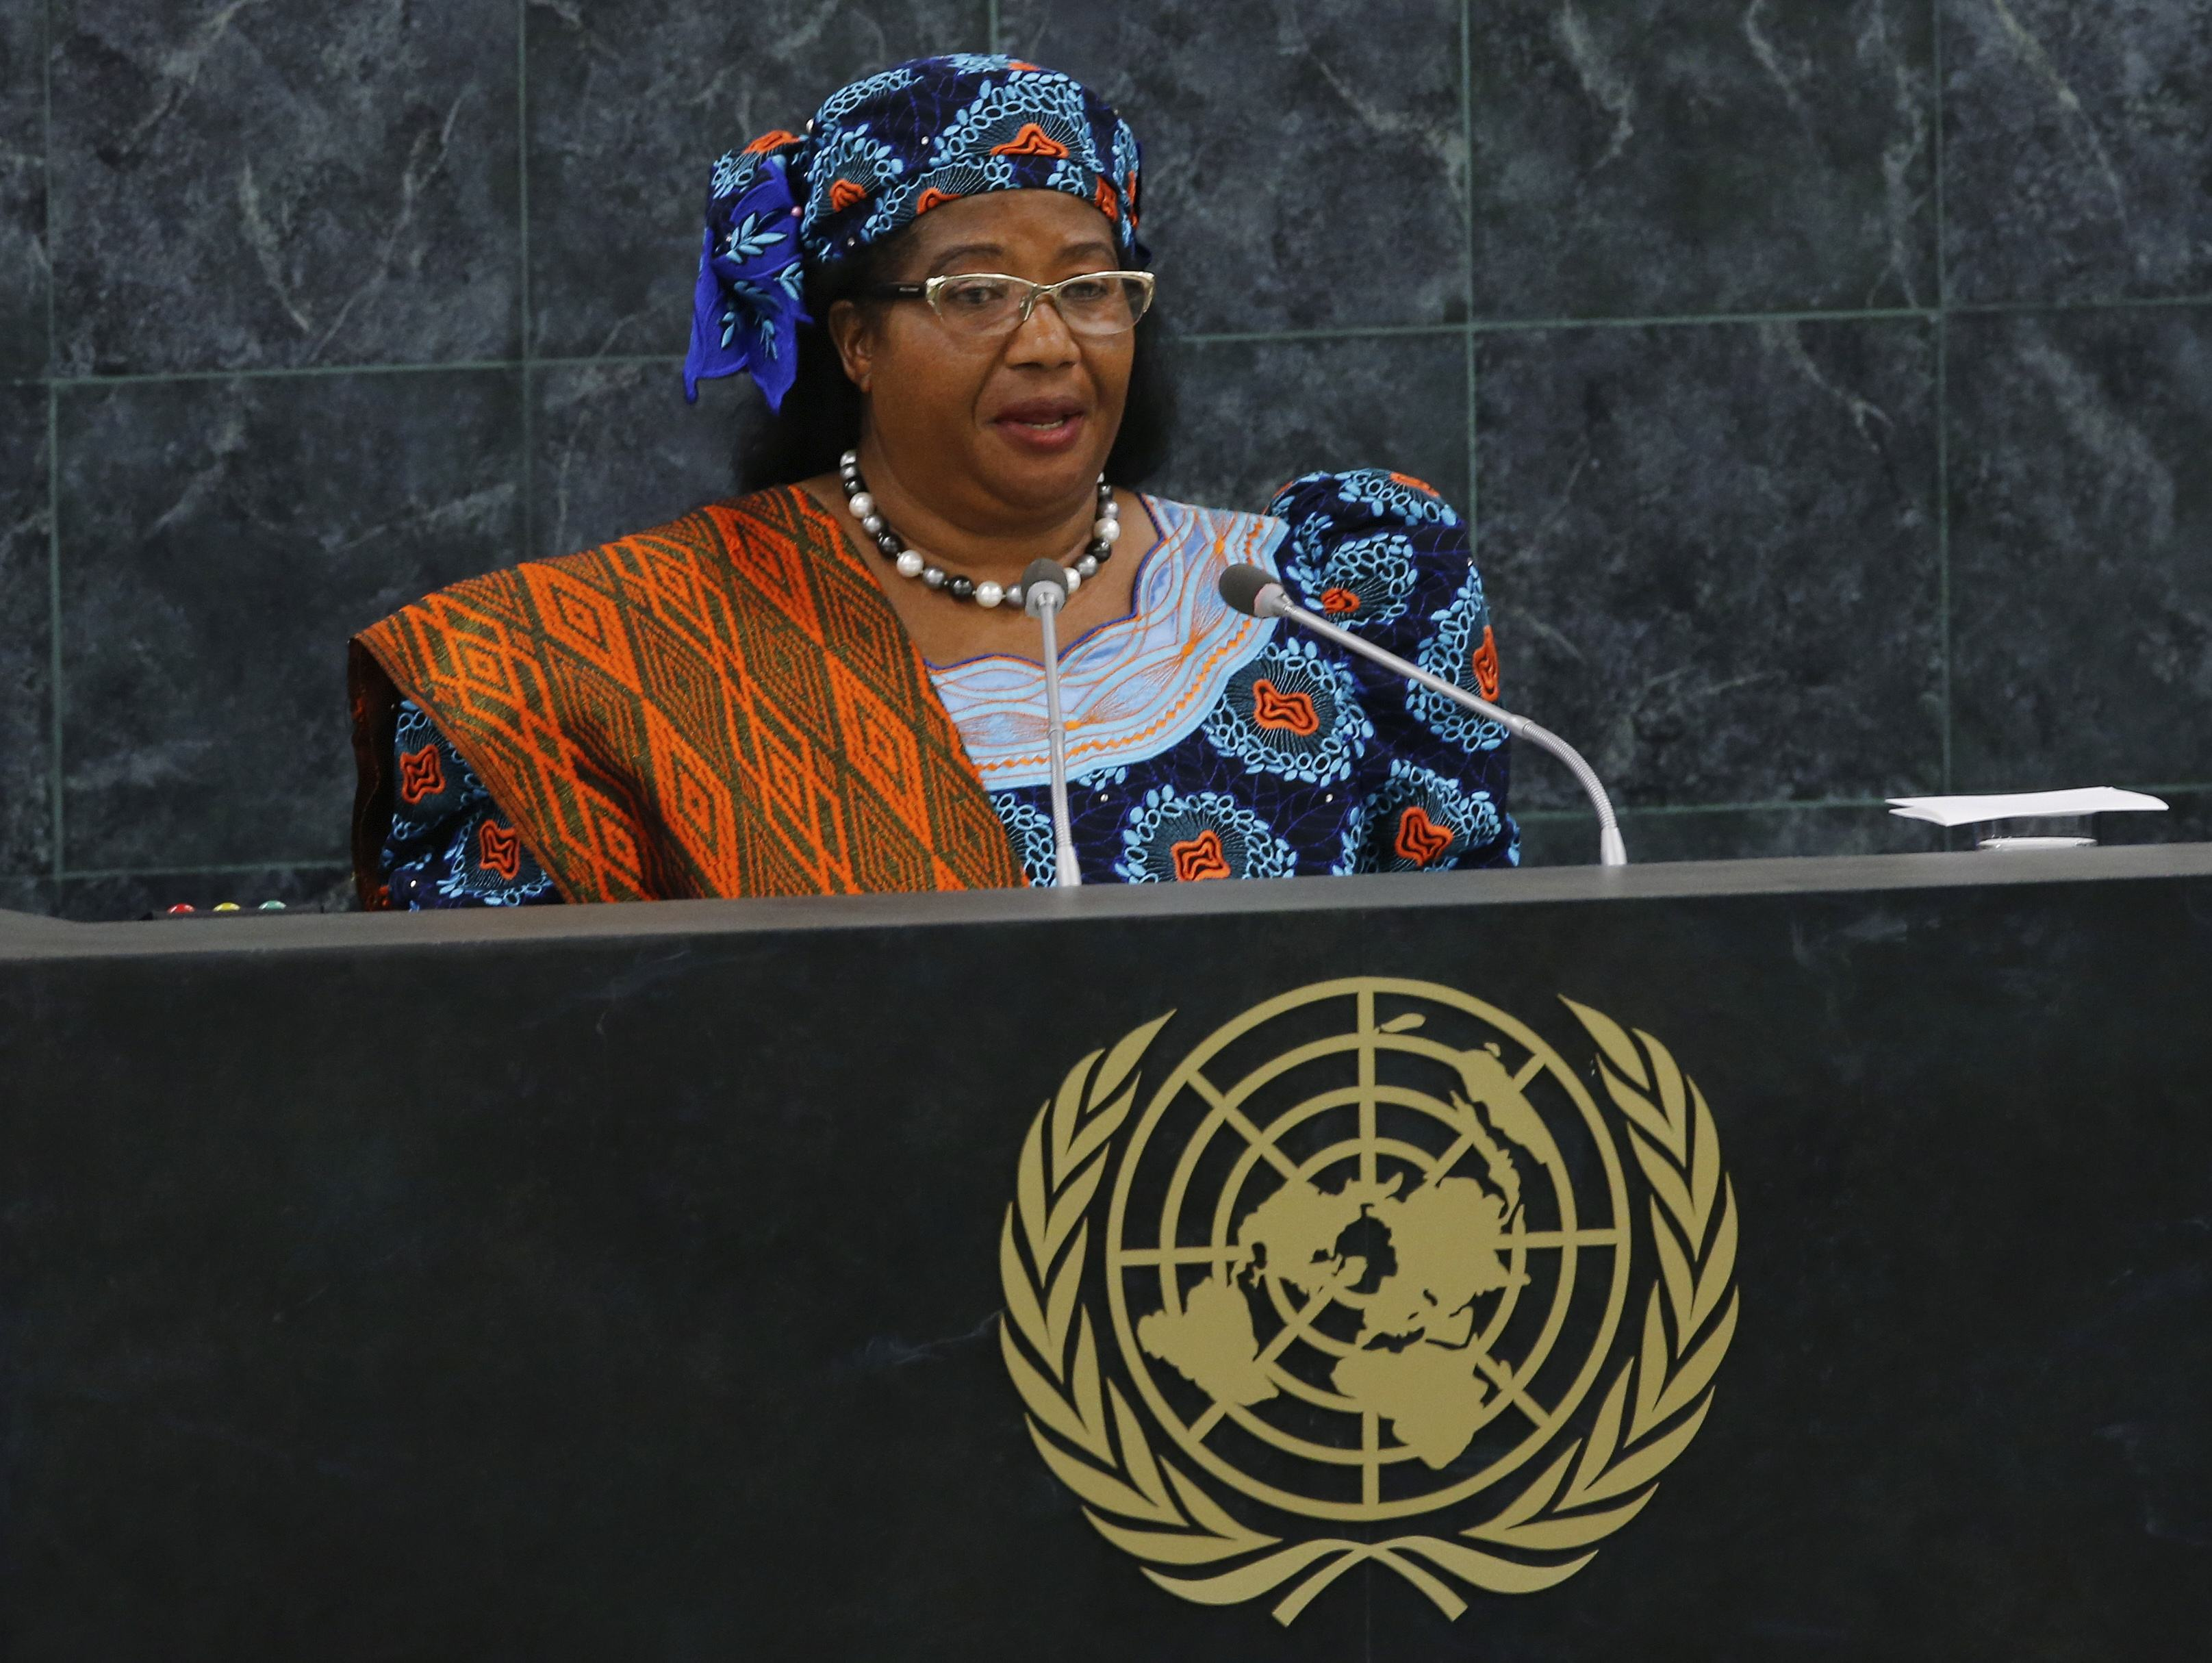 'Serious Anomalies' in Malawi Wote Count: President